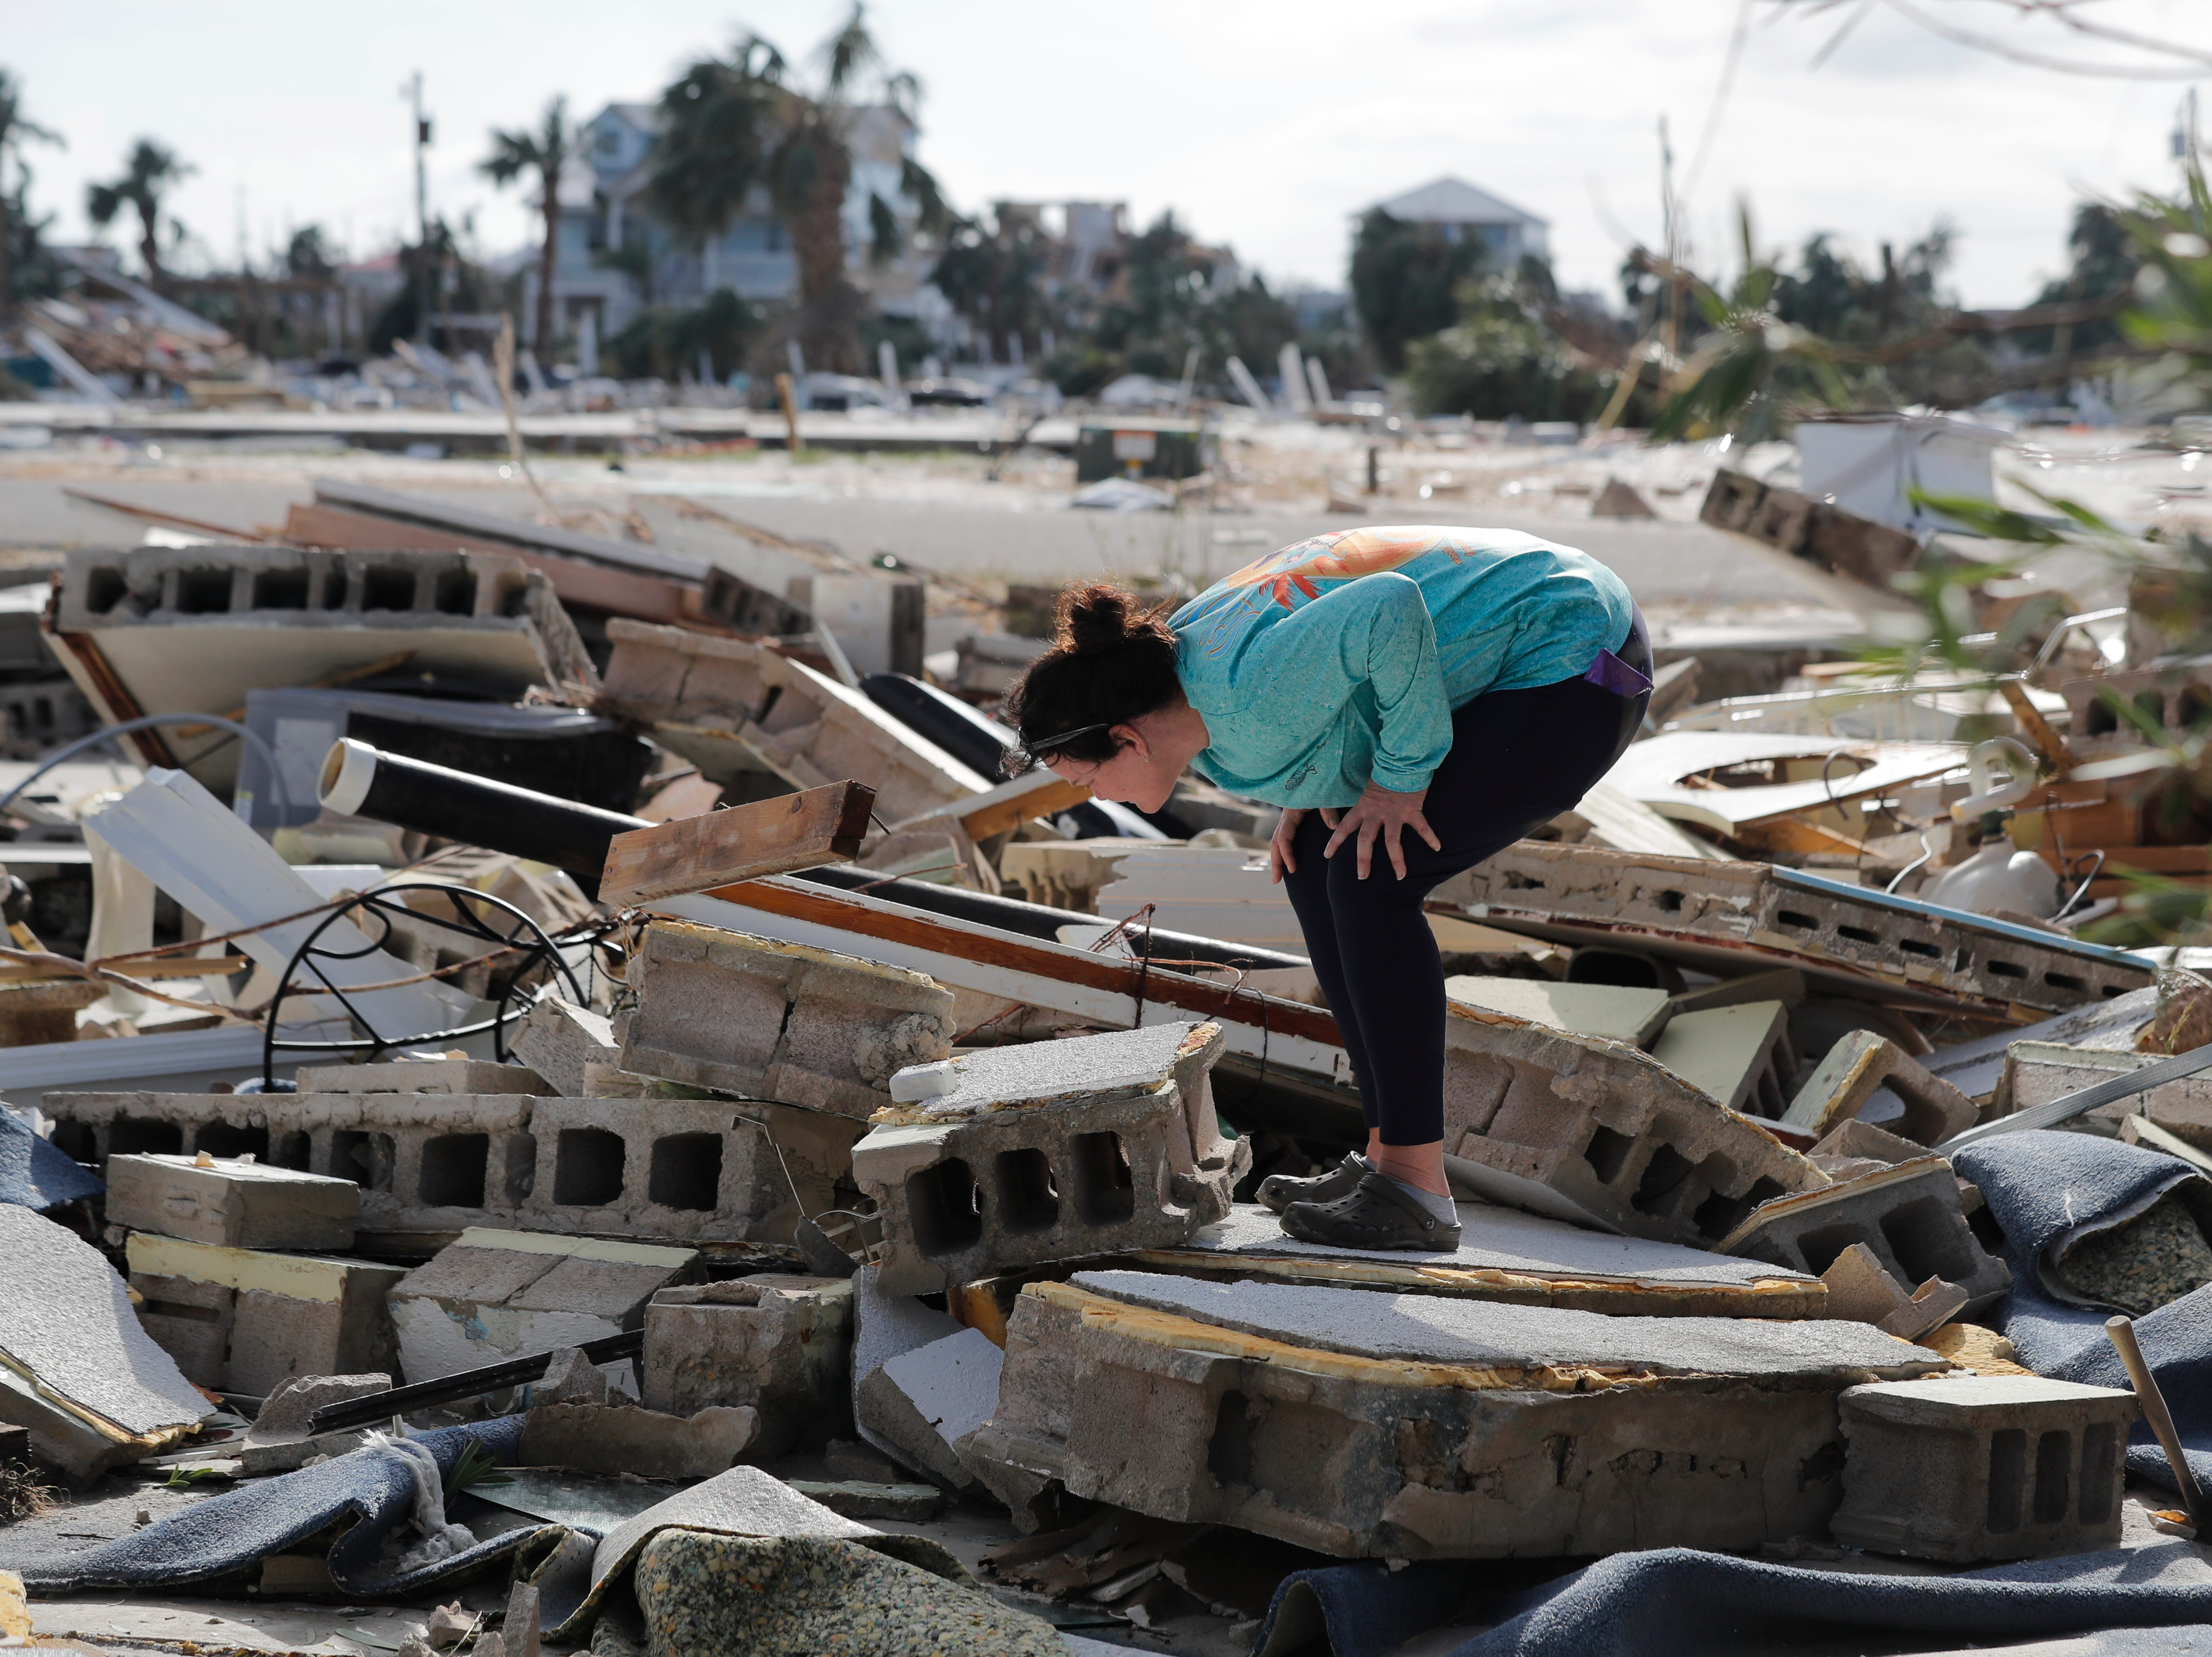 Mishelle McPherson looks for her friend in the rubble of her home, since she knows she stayed behind in the home during Hurricane Michael, in Mexico Beach, Fla., Thursday, Oct. 11, 2018. (AP Photo/Gerald Herbert)